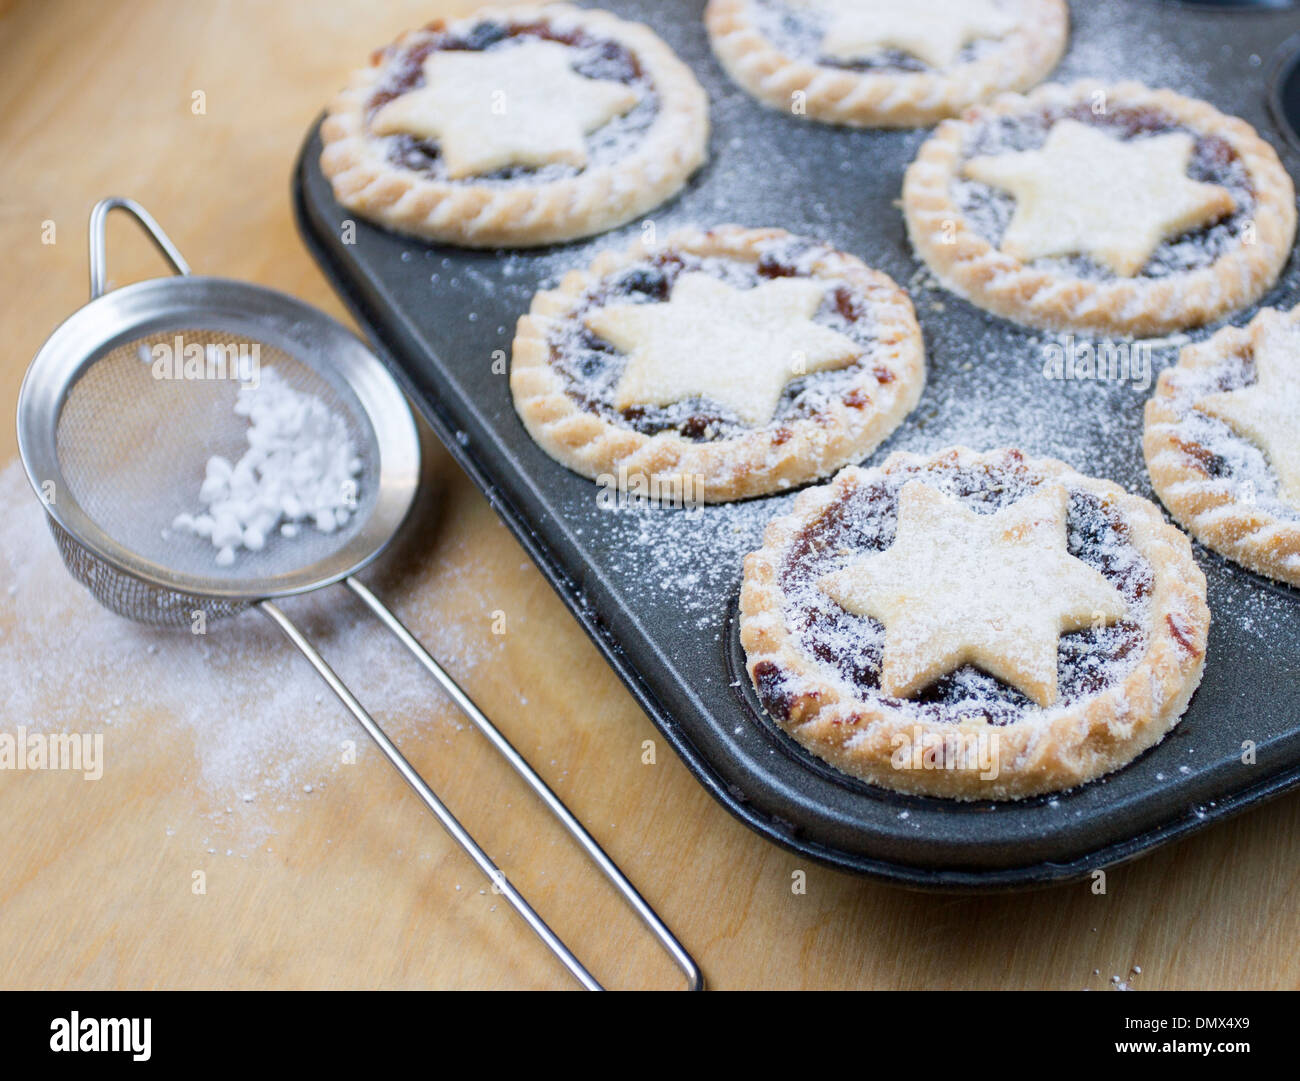 Home made icing sugar dusted mince pies in baking tray with sieve on wooden surface - Stock Image